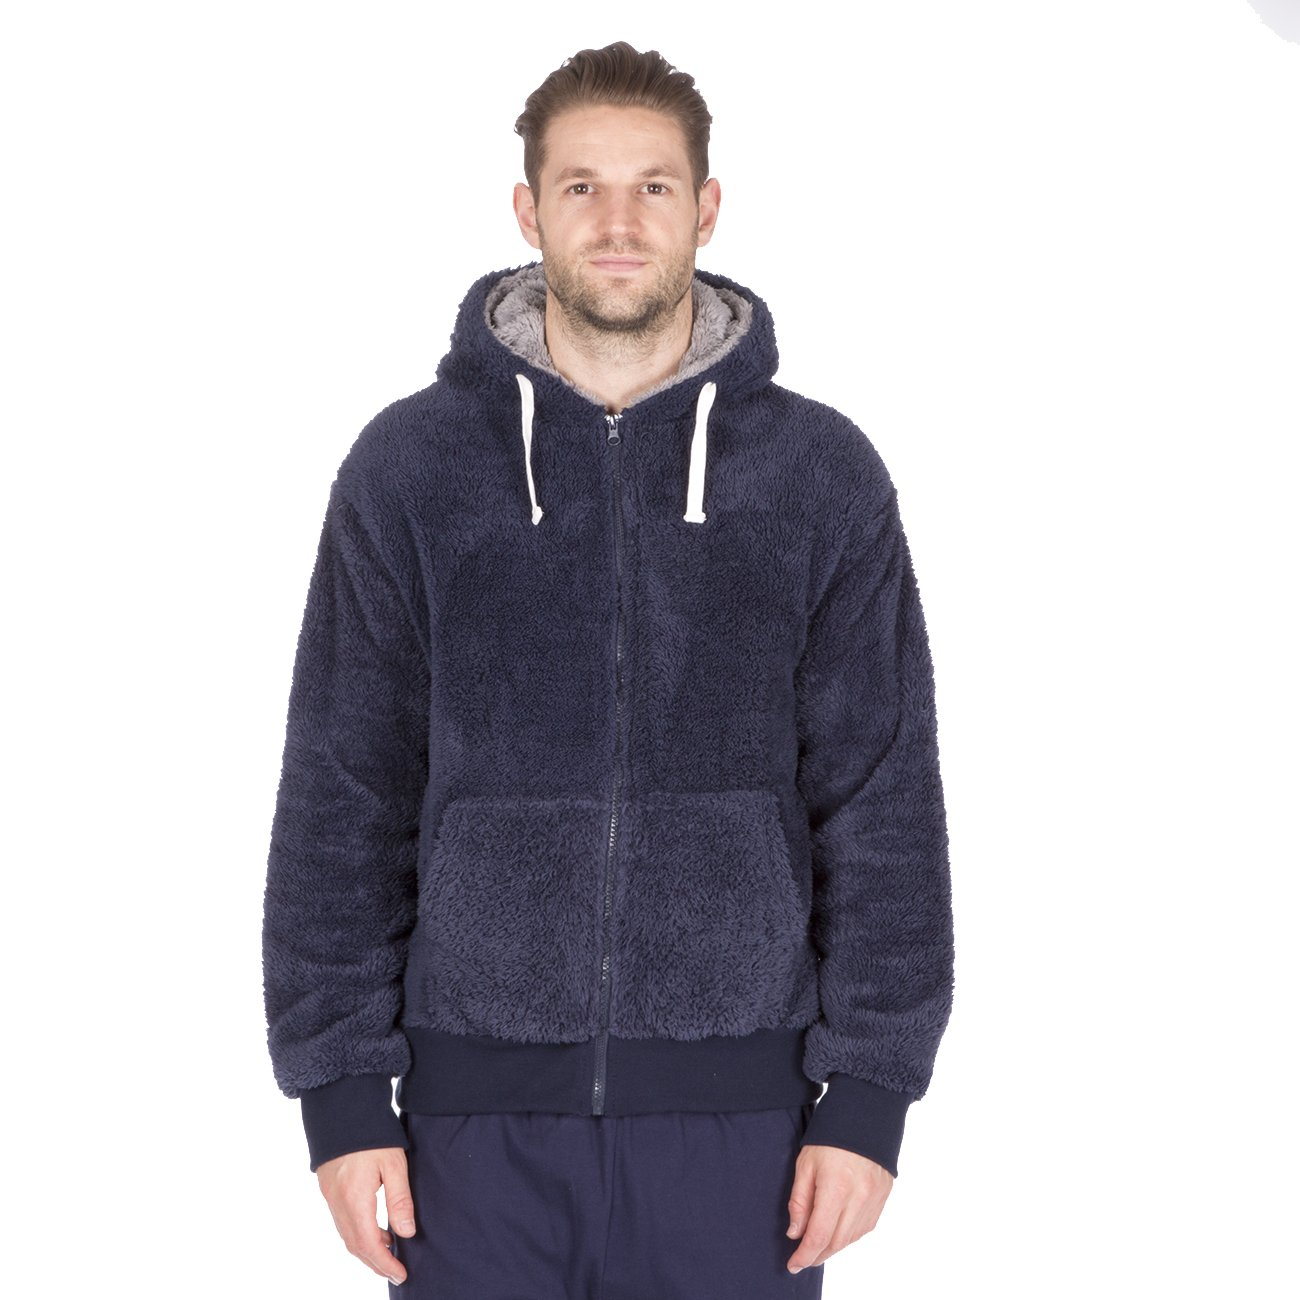 CargoBay Mens Snuggle Fleece Hooded Polyester Lounge Hoodie Top with Pockets